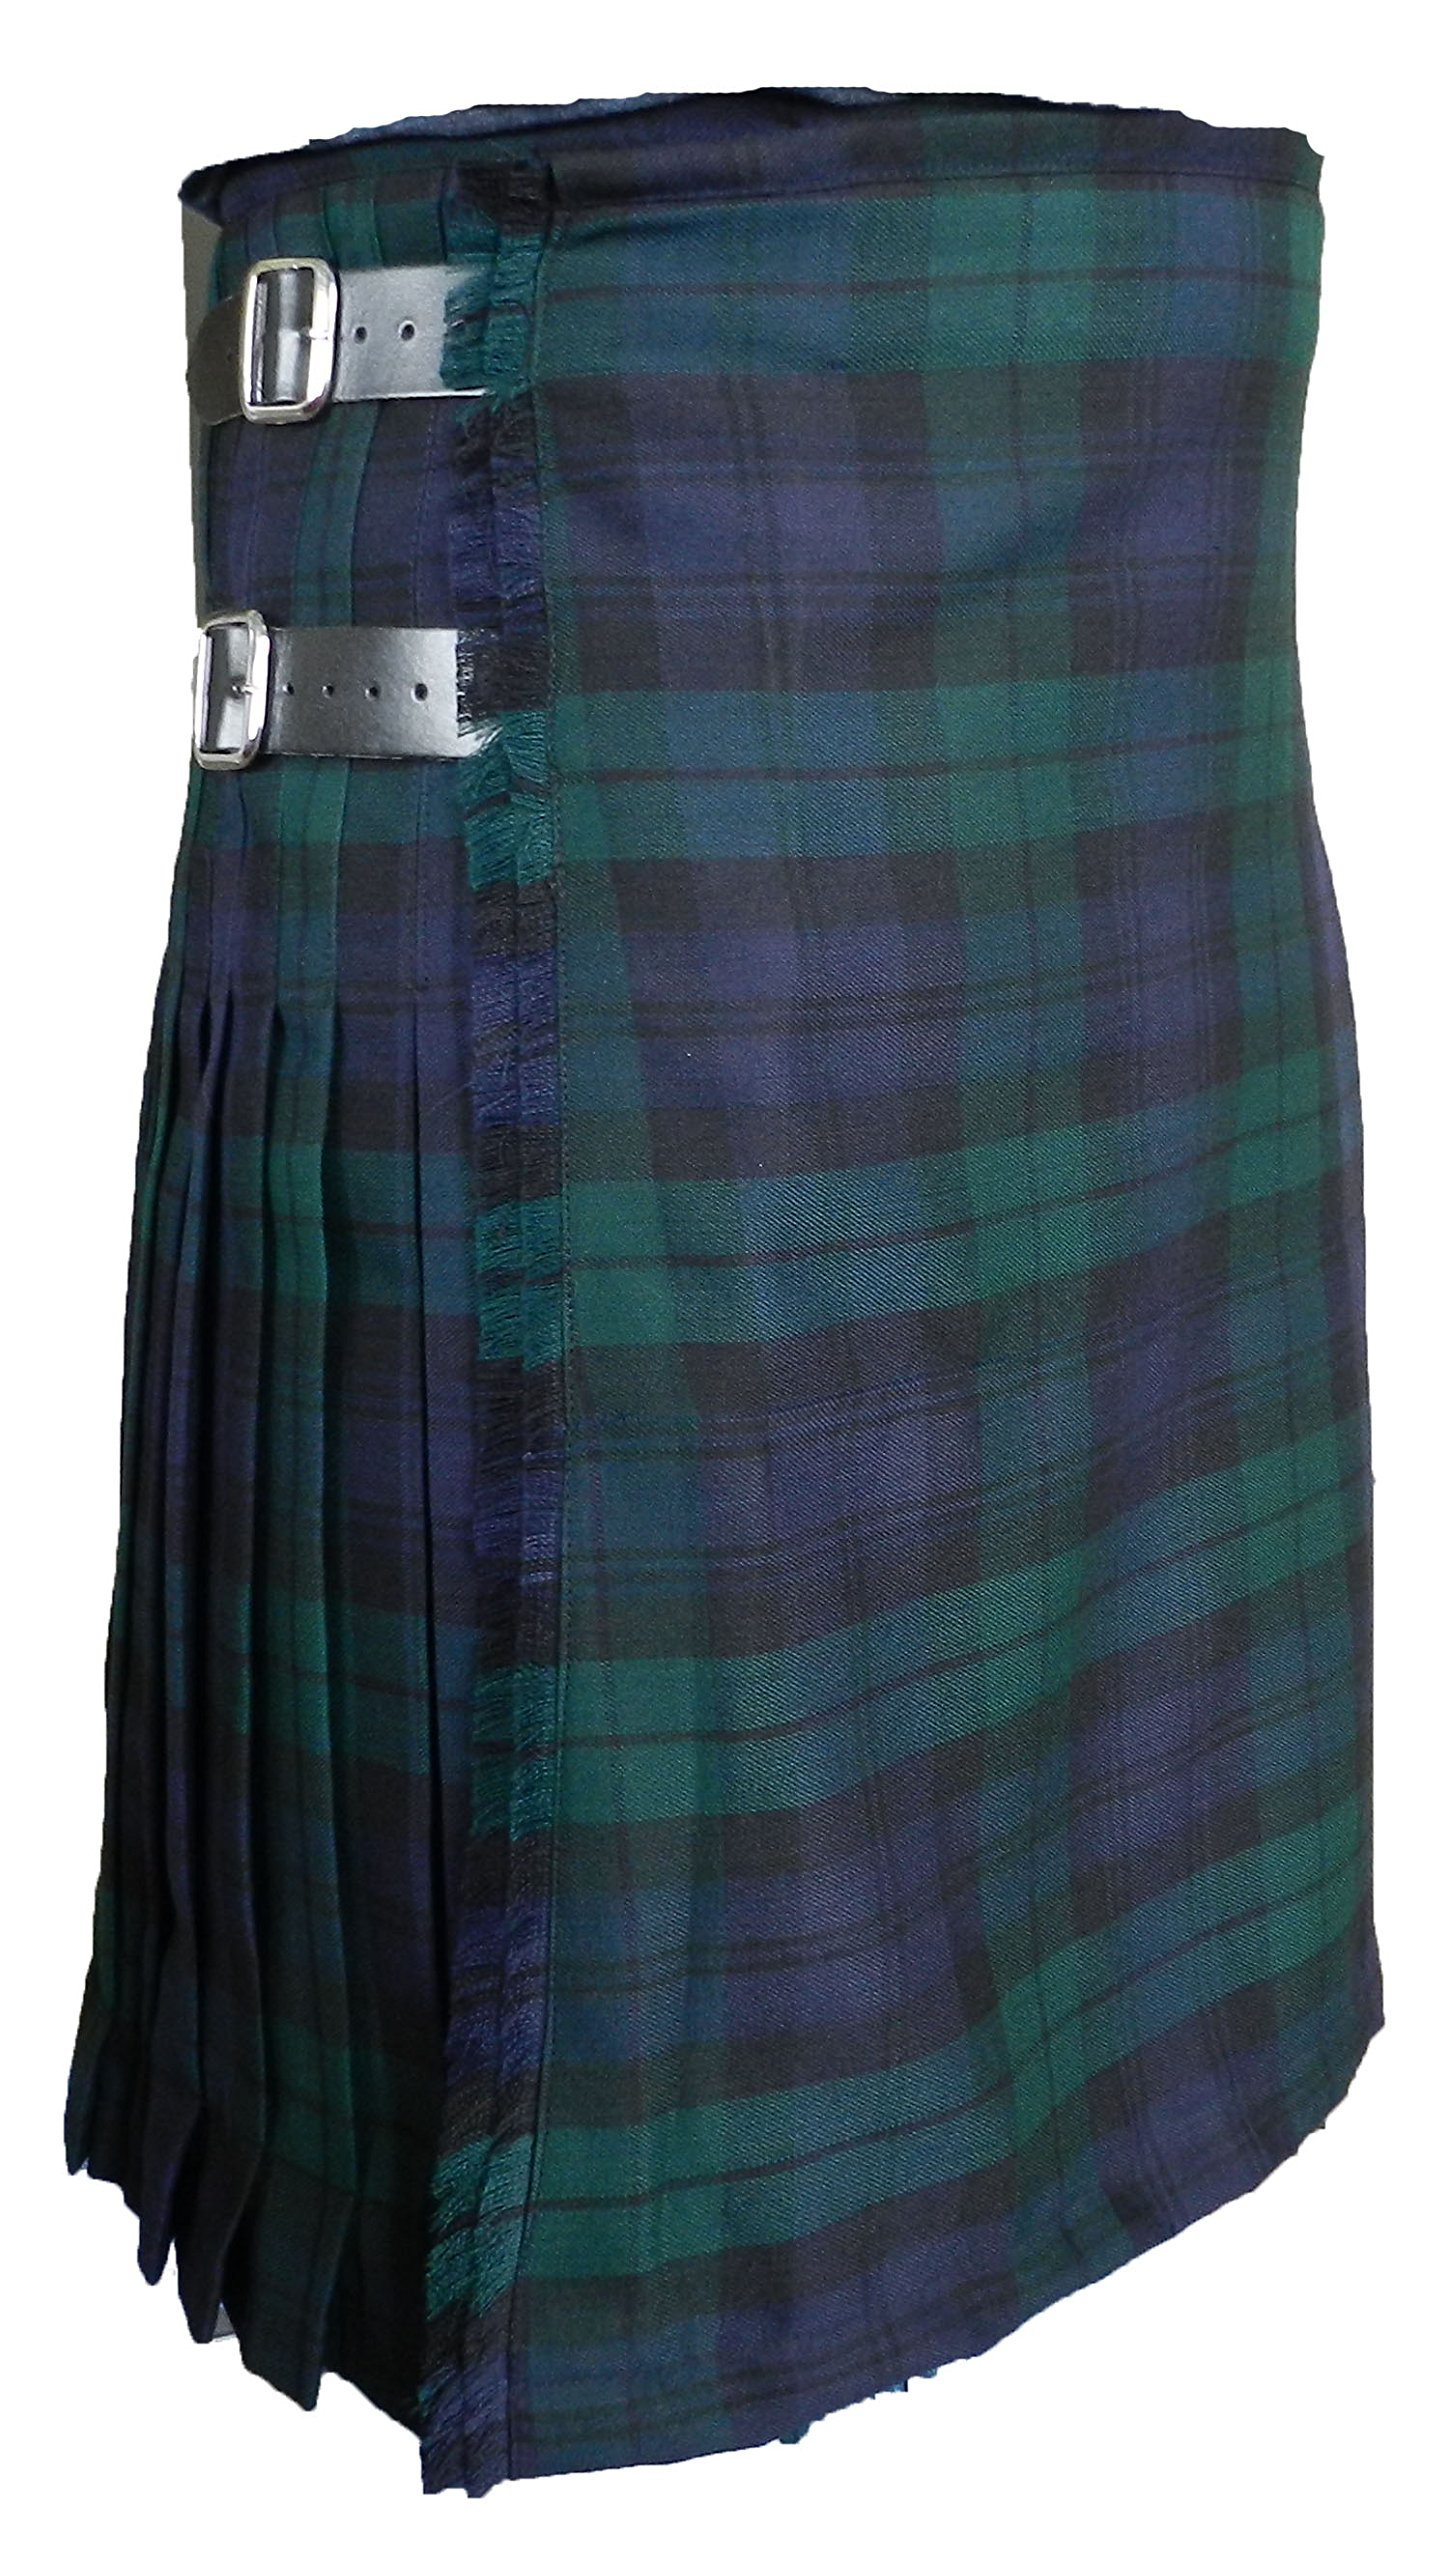 100% 13 oz Black Watch Wool Scottish Kilt 36